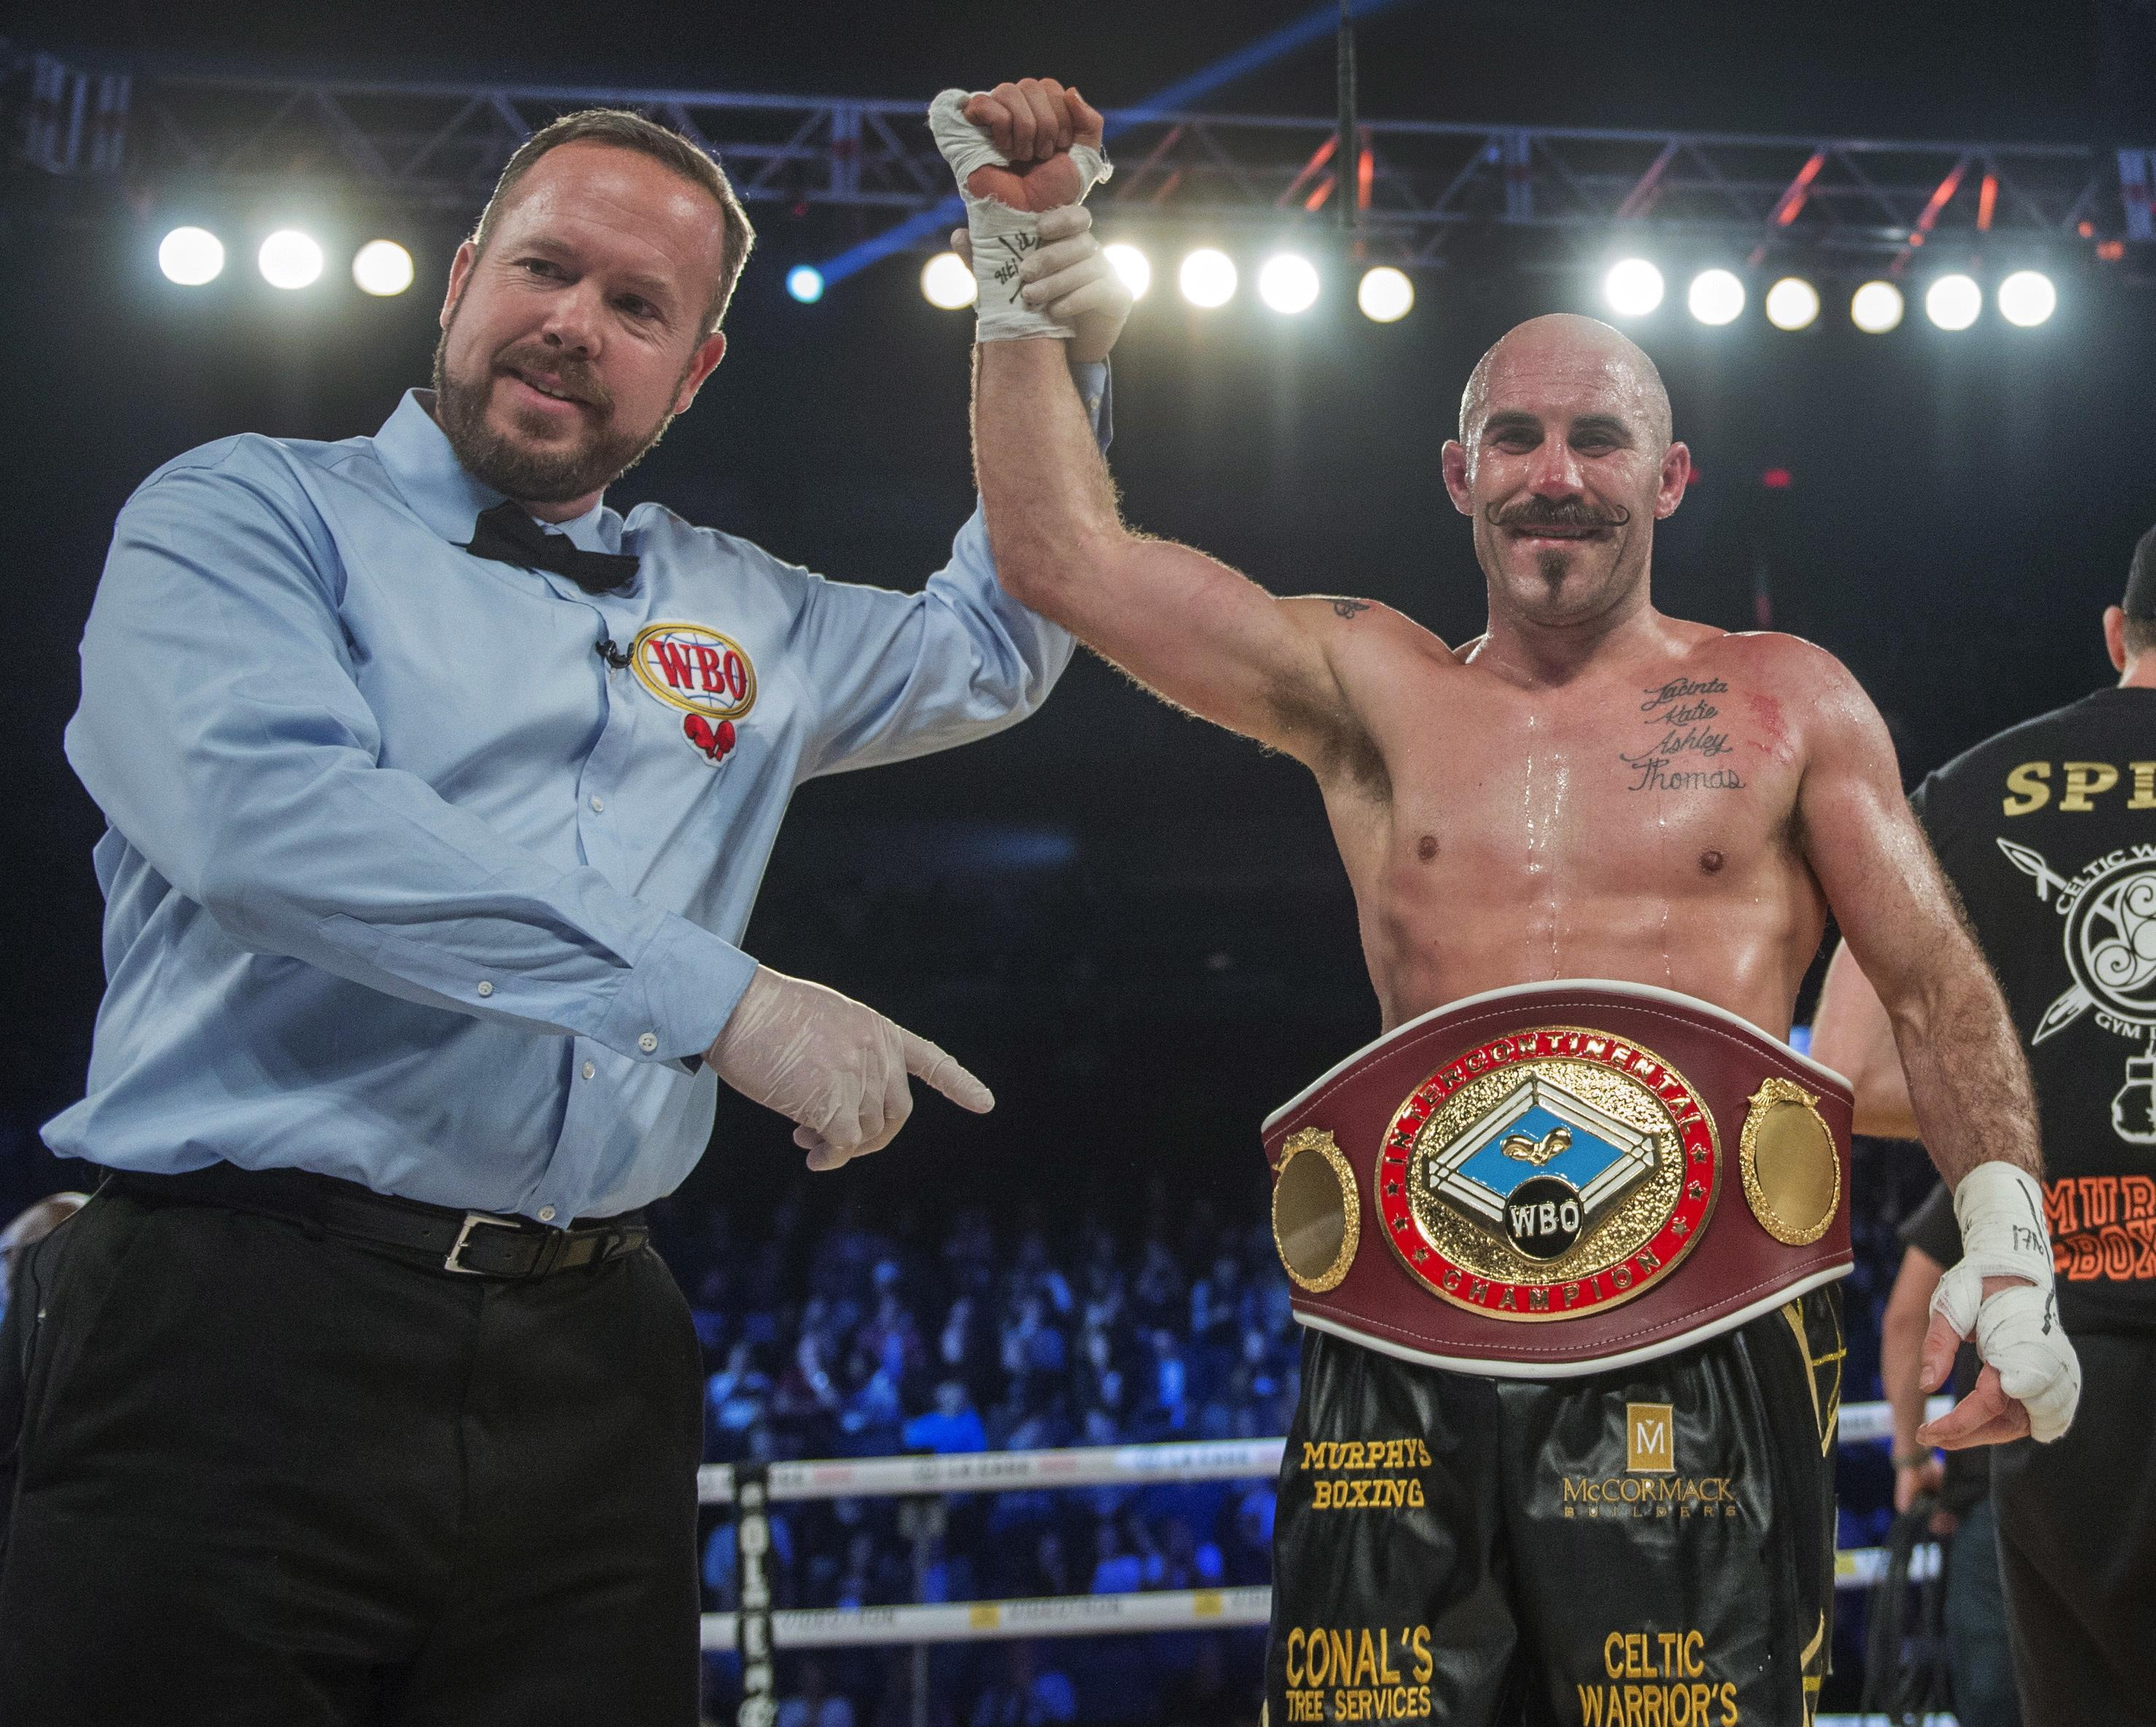 Lemieux claims that O'Sullivan is disrespectful and has no class